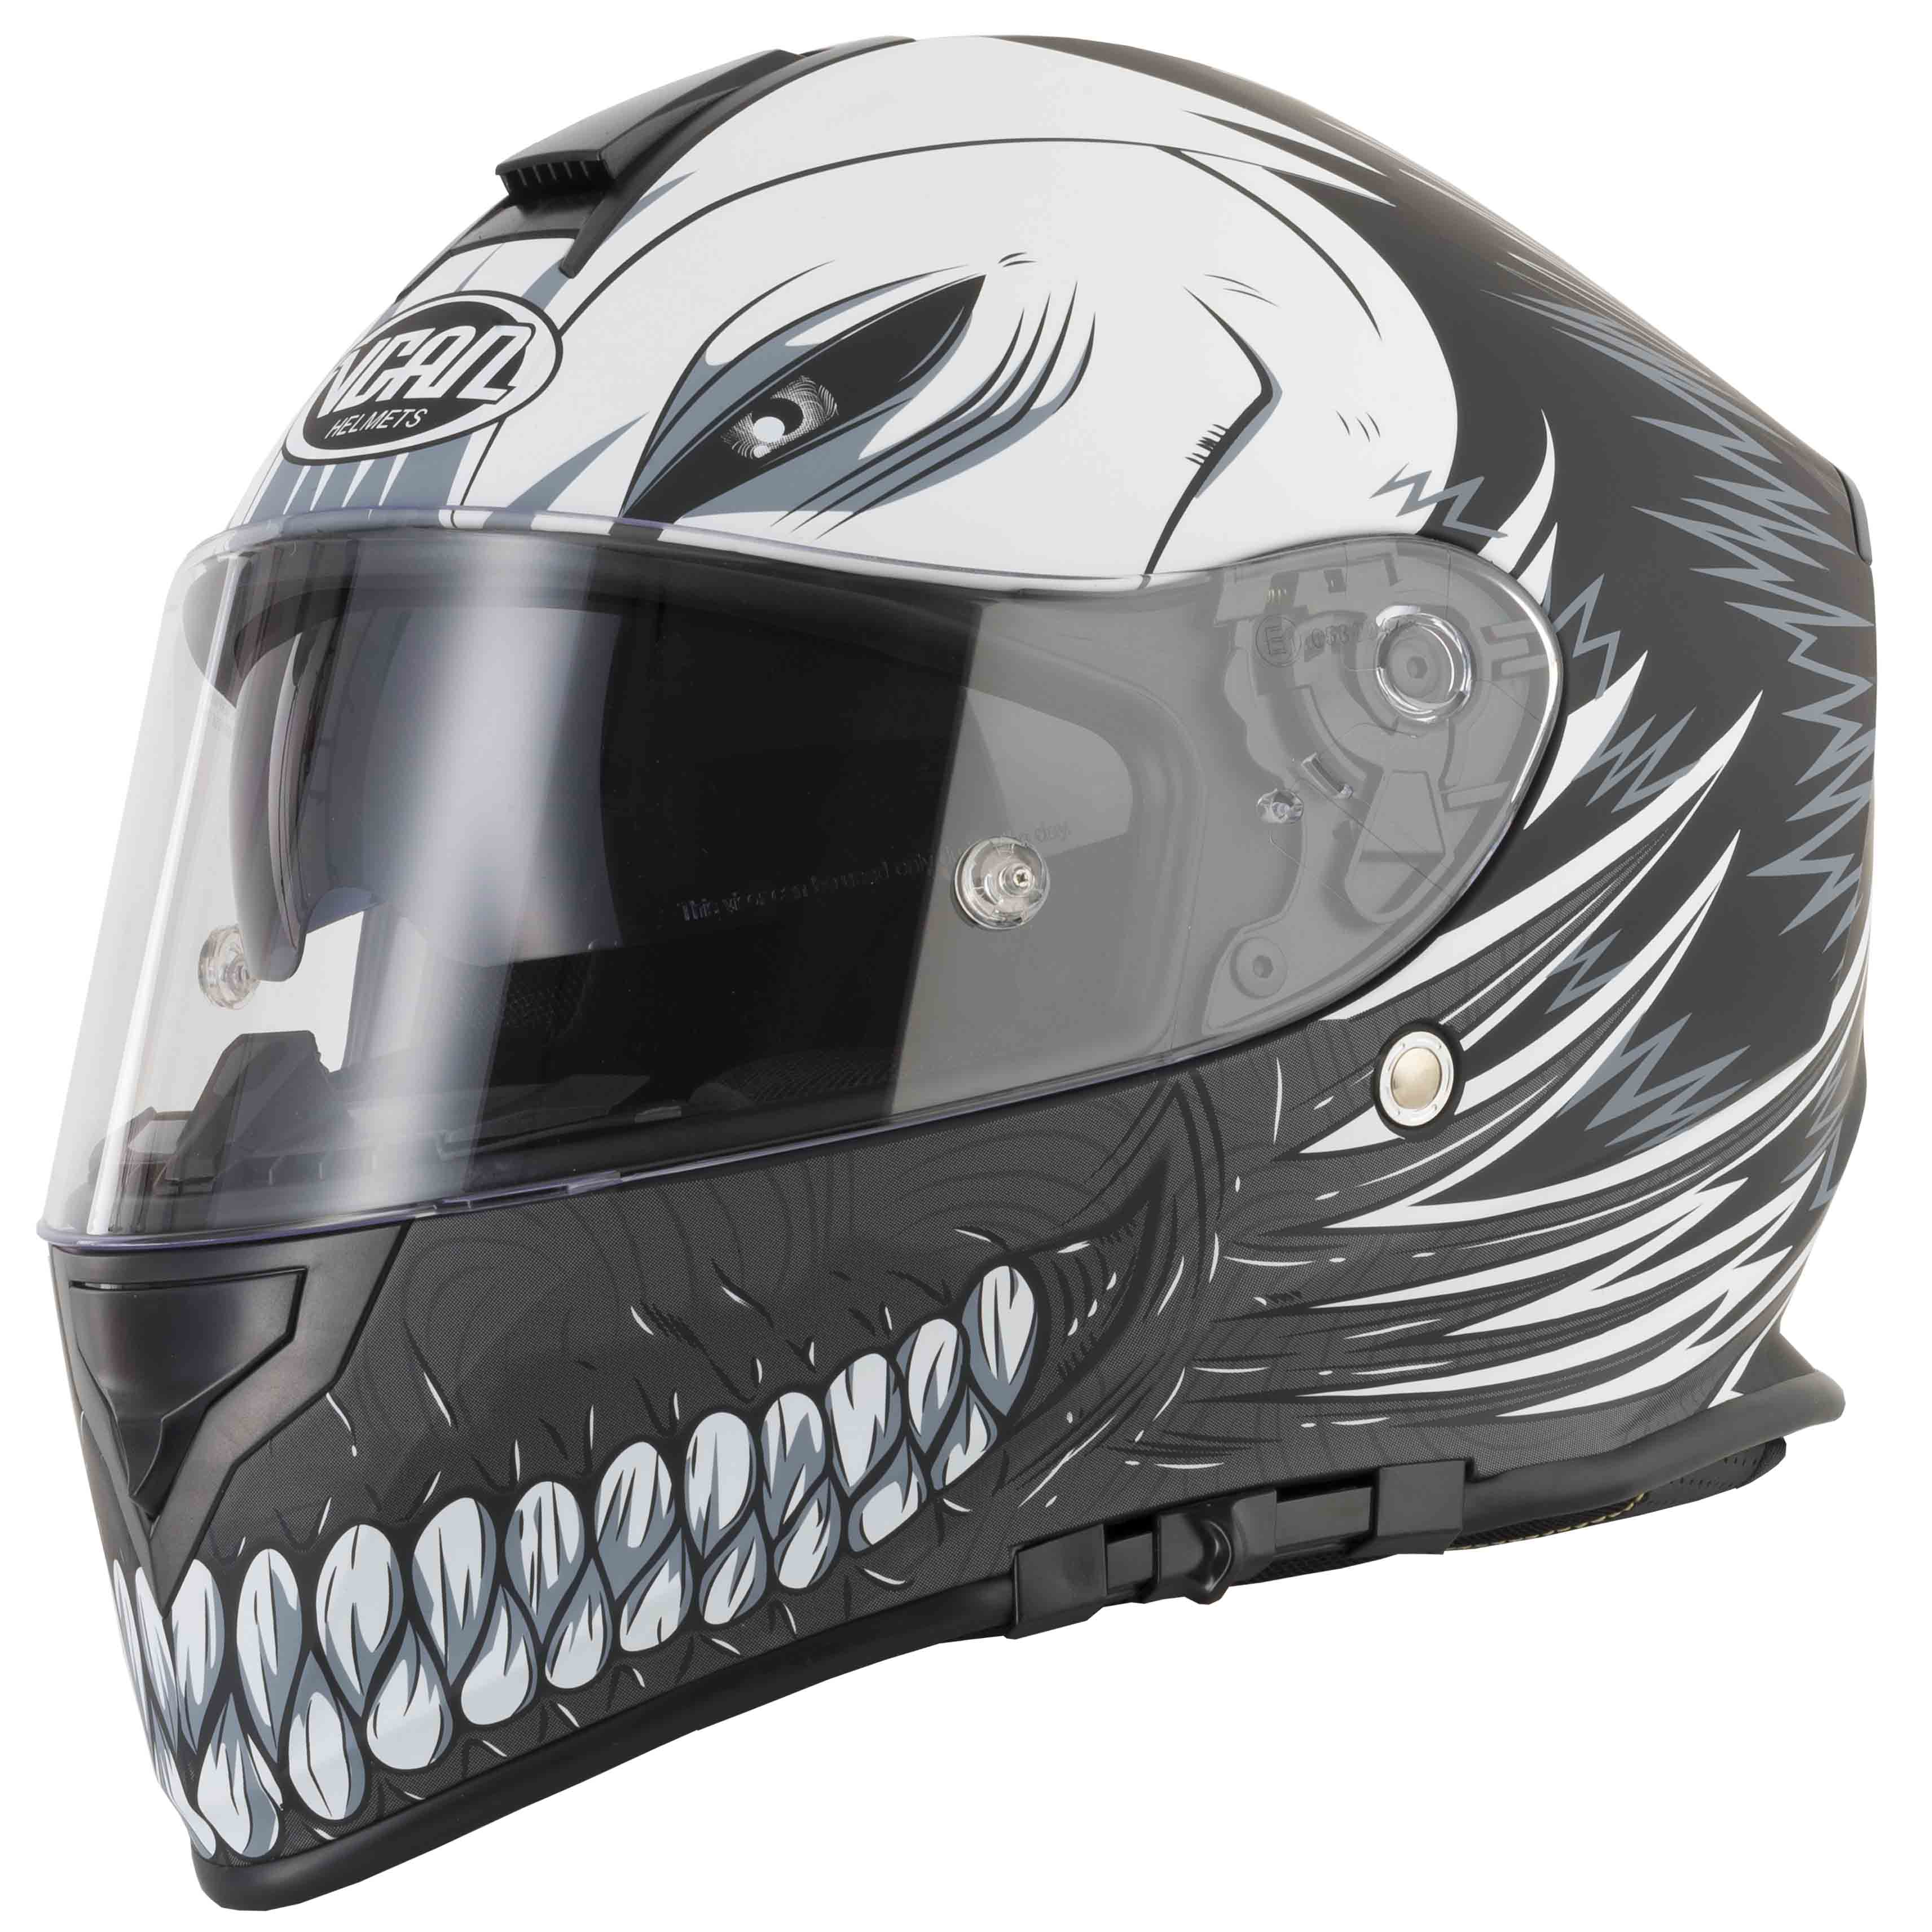 Full face helmet Vcan V127 Hollow Matt black extra large